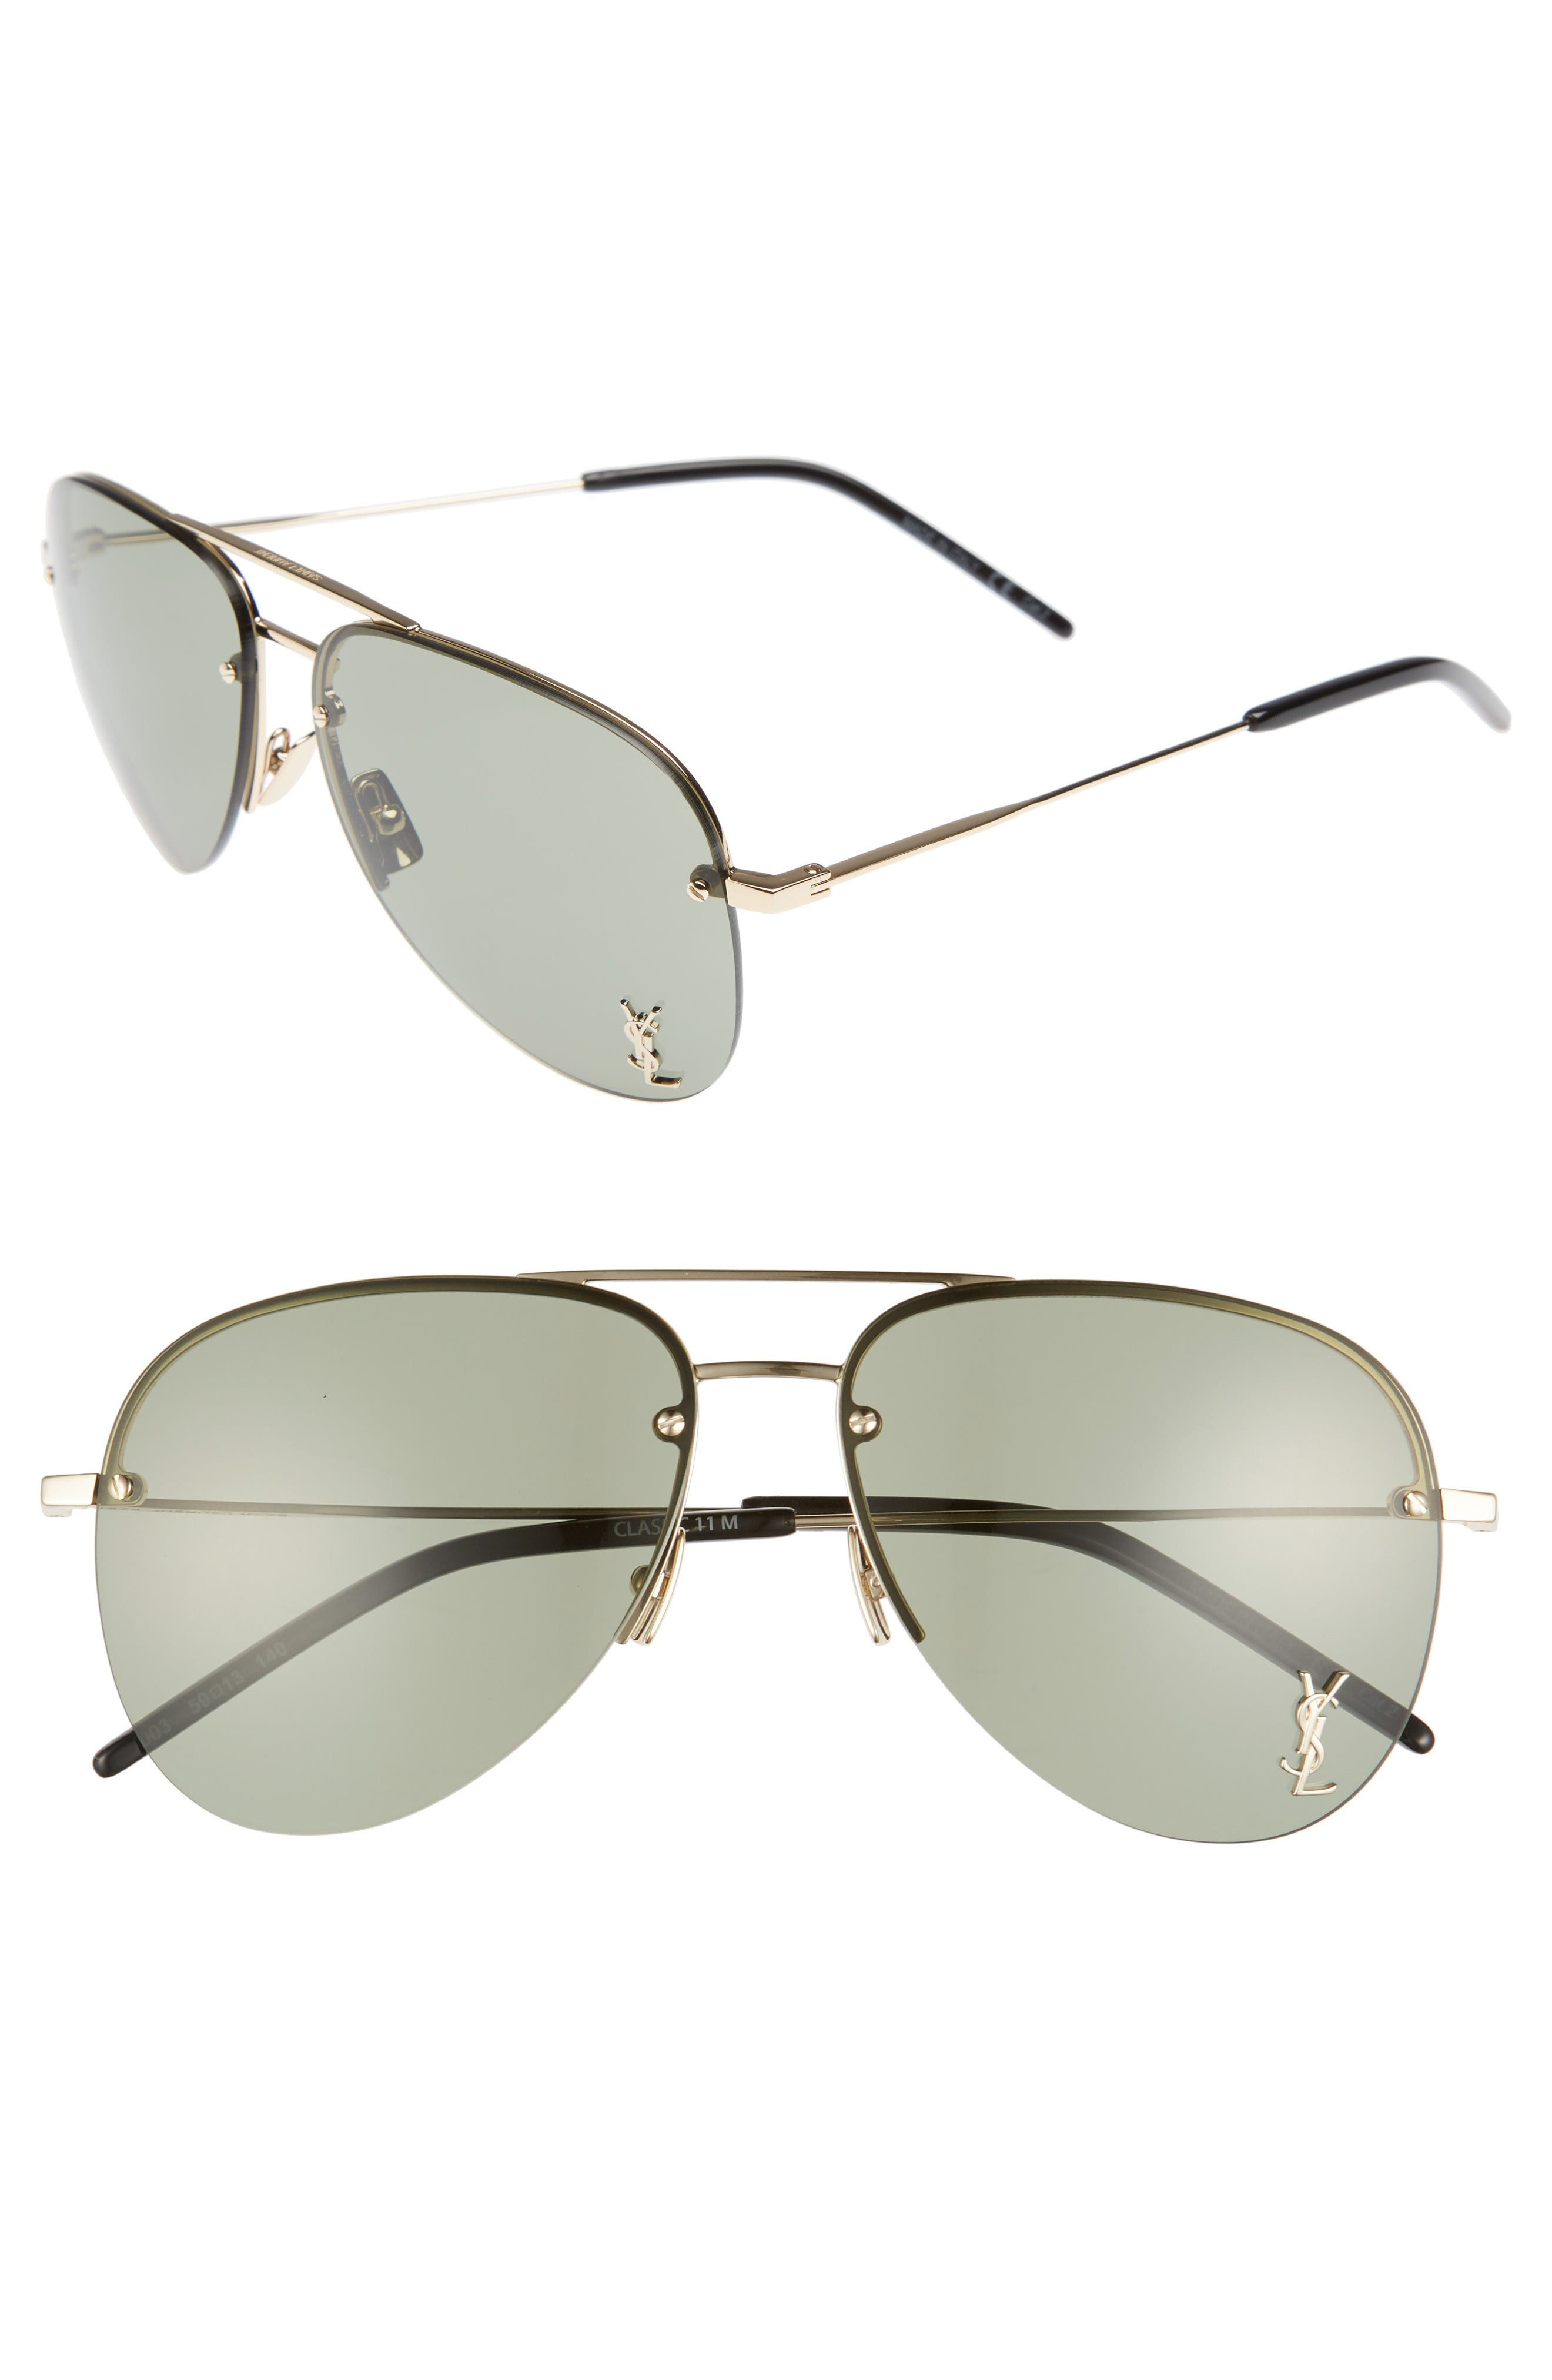 Saint Laurent 59mm Aviator Sunglasses